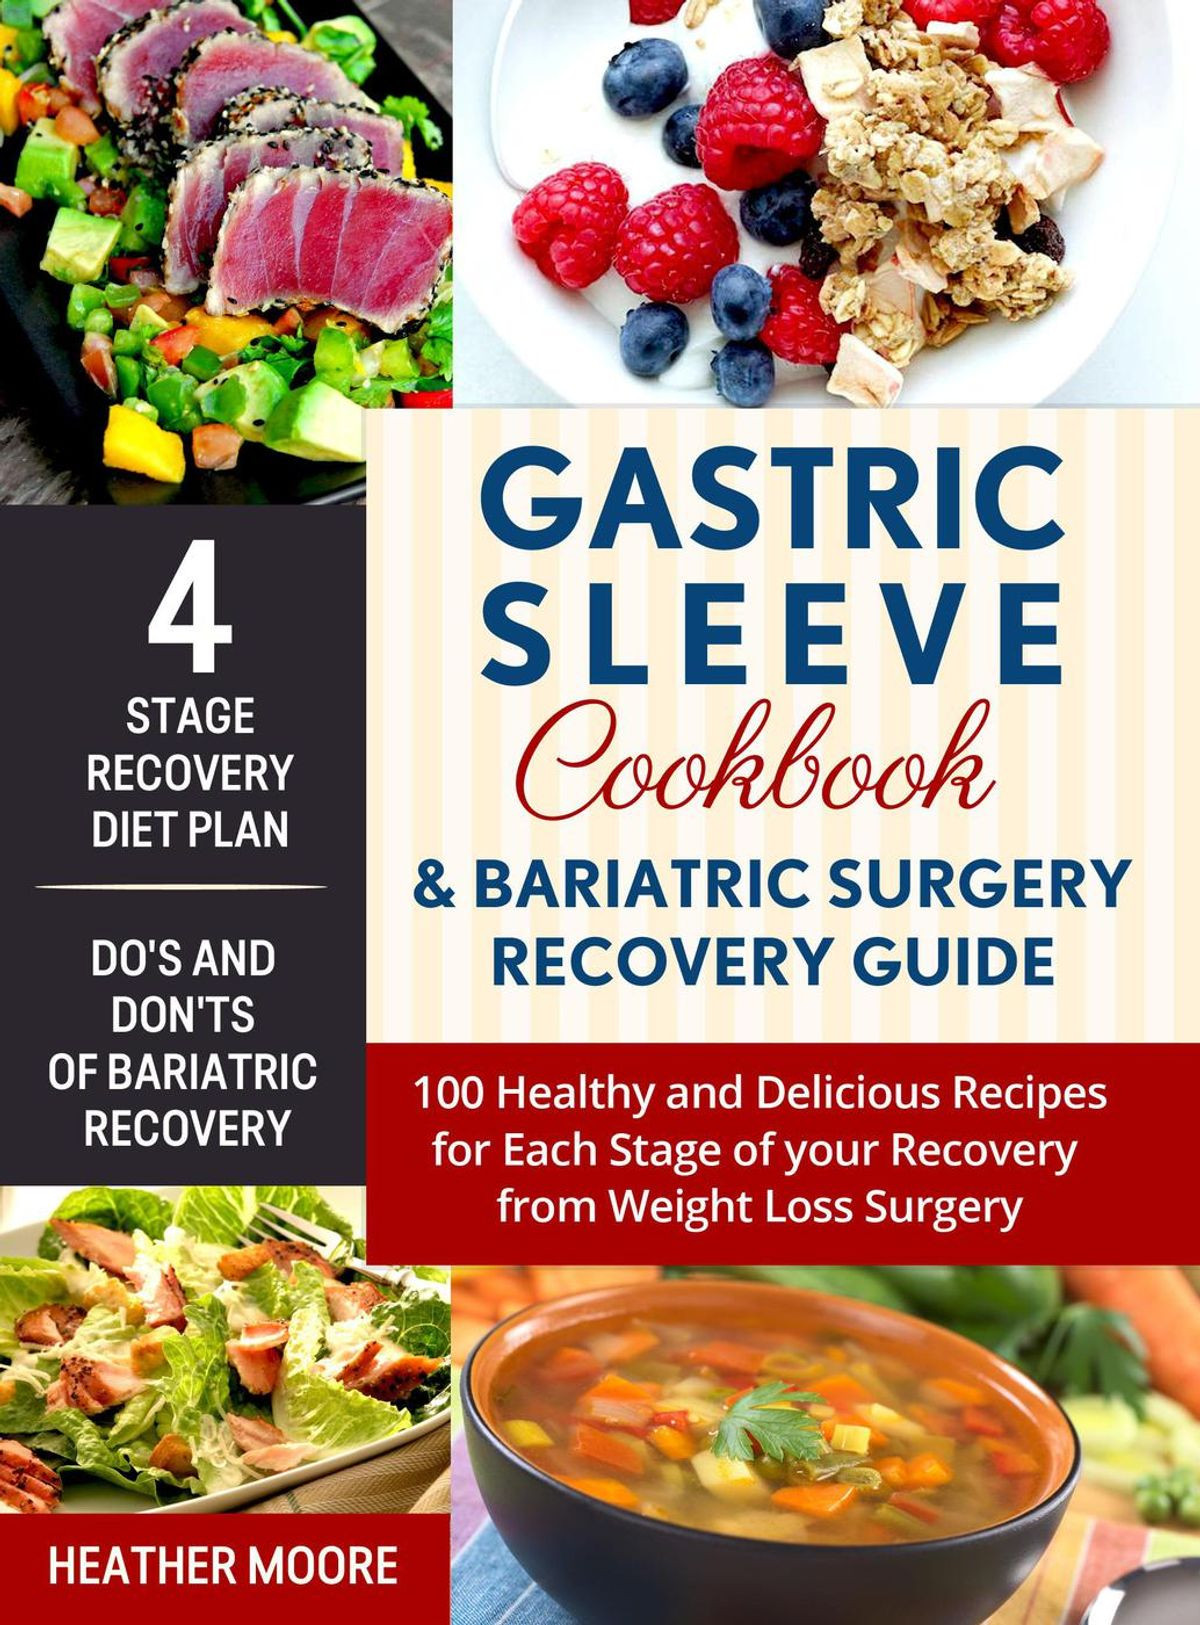 Bariatric Chicken Recipes Weight Loss Surgery  Gastric Sleeve Cookbook & Bariatric Surgery Recovery Guide